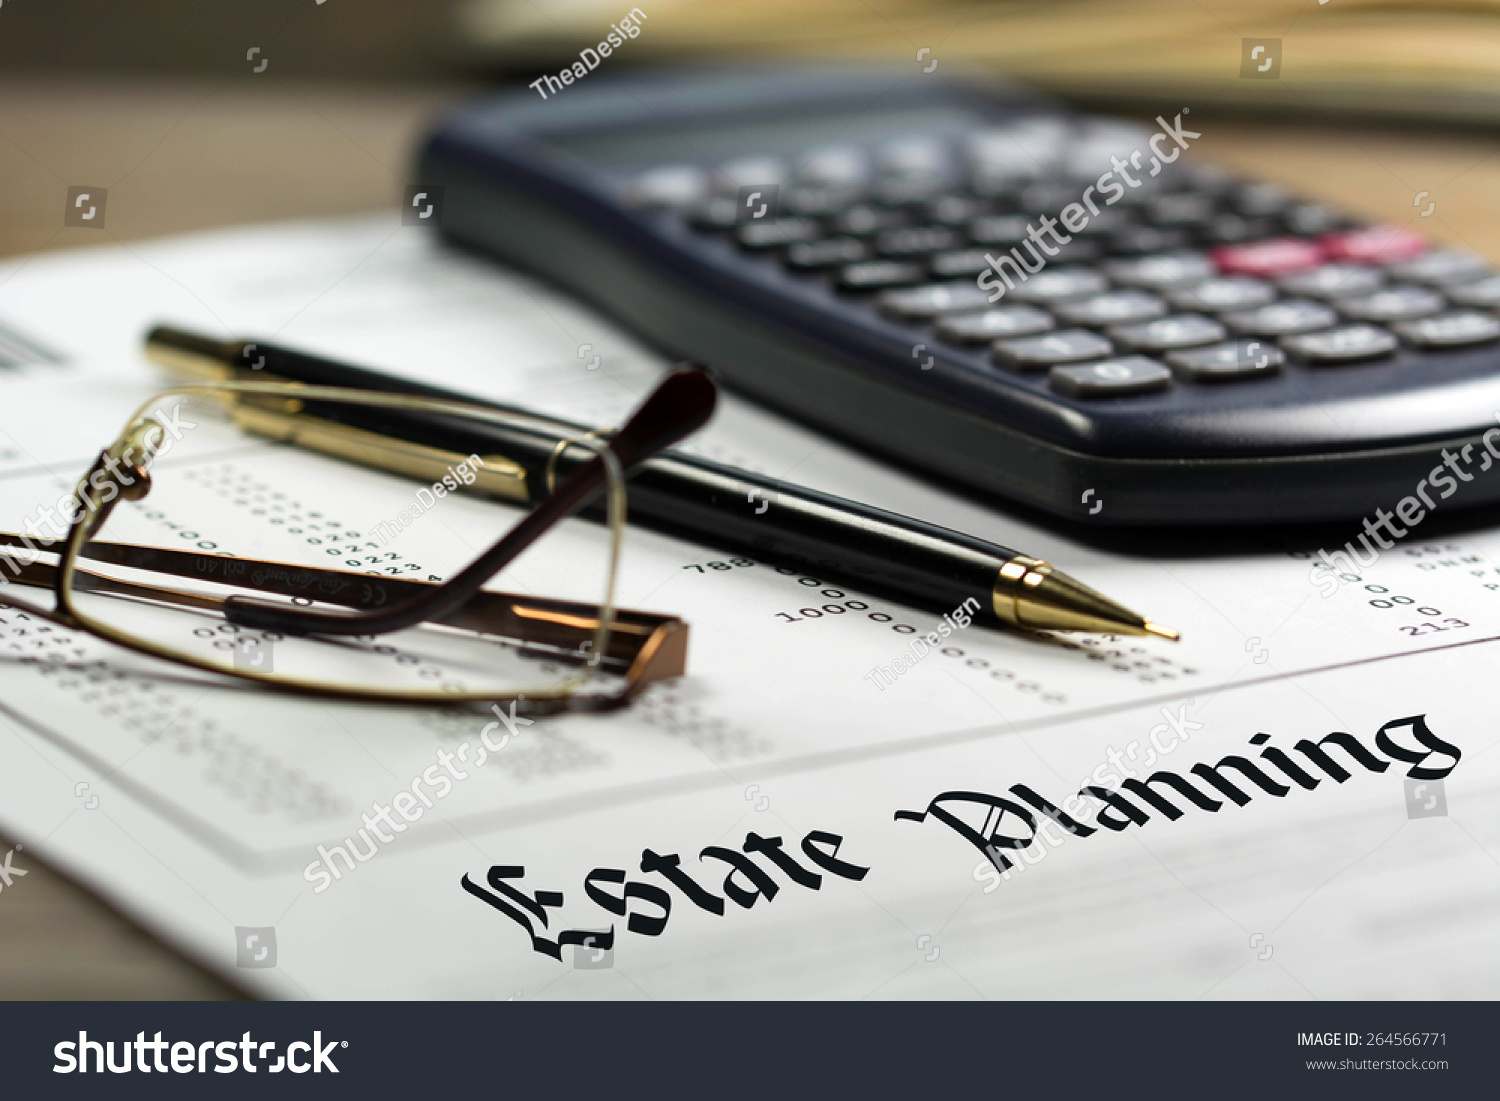 Estate planning. Calculator, glasses and black pen on financial.